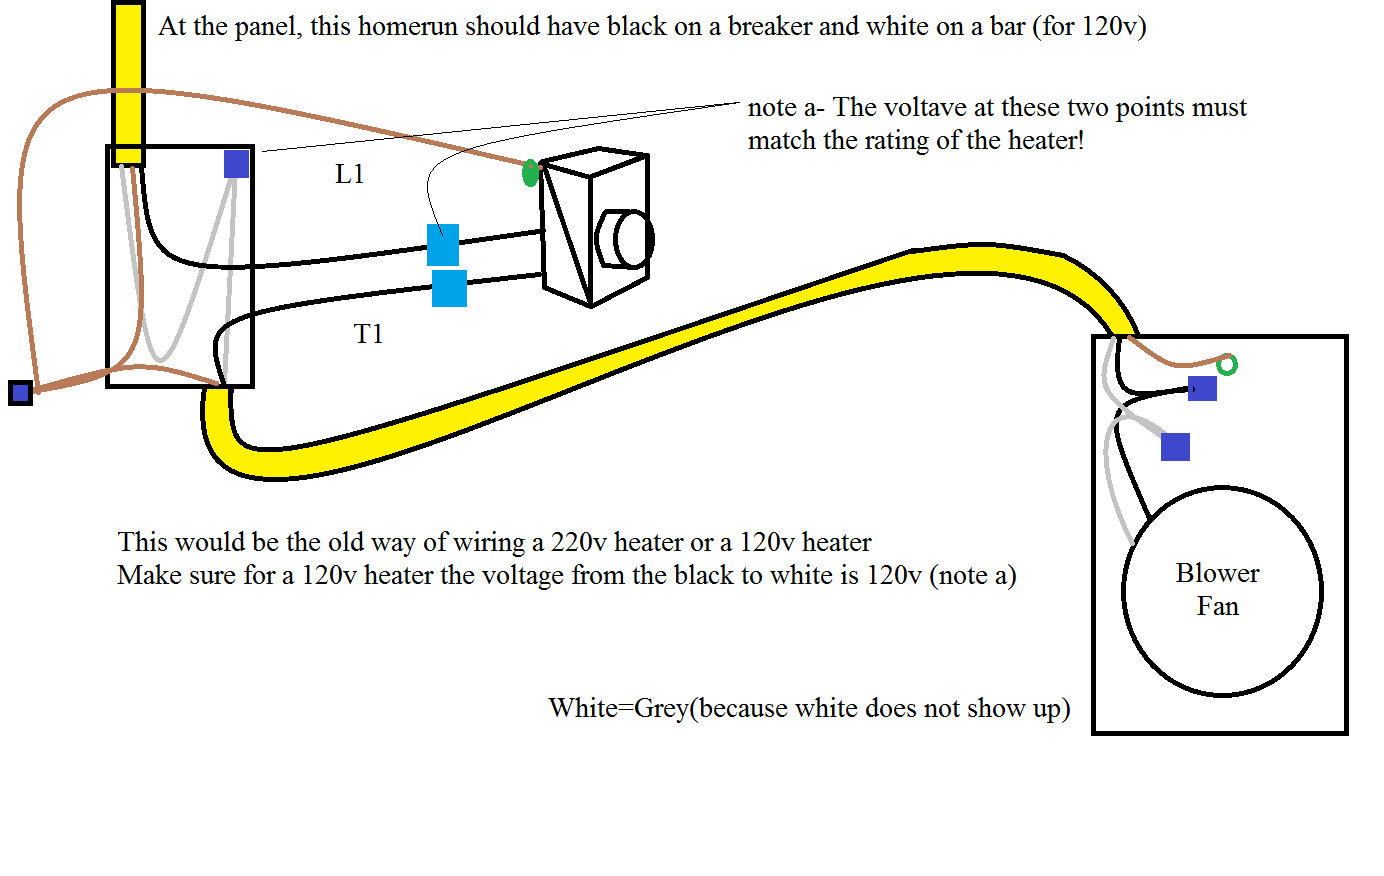 """Wiring A Heater Thermostat - Wiring Diagram Img on 8141 20 defrost timer diagram, baseboard heater relay, baseboard heater control wiring diagram, three wire thermostat diagram, baseboard heater electrical diagram, 240v single phase motor wiring diagram, baseboard thermostat replacement, hot tub motor wiring diagram, ge motor starter wiring diagram, 240v baseboard heater wiring diagram, 8145 20"""" electric defrost diagram, 110v 220v motor wiring diagram, baseboard heater unit, baseboard heating thermostats, baseboard heaters with thermostat, honeywell ra832a relay wiring diagram, tl8230a1003 wiring diagram, baseboard heater parts diagram, baseboard heater coil wiring diagram, wall heater thermostat diagram,"""